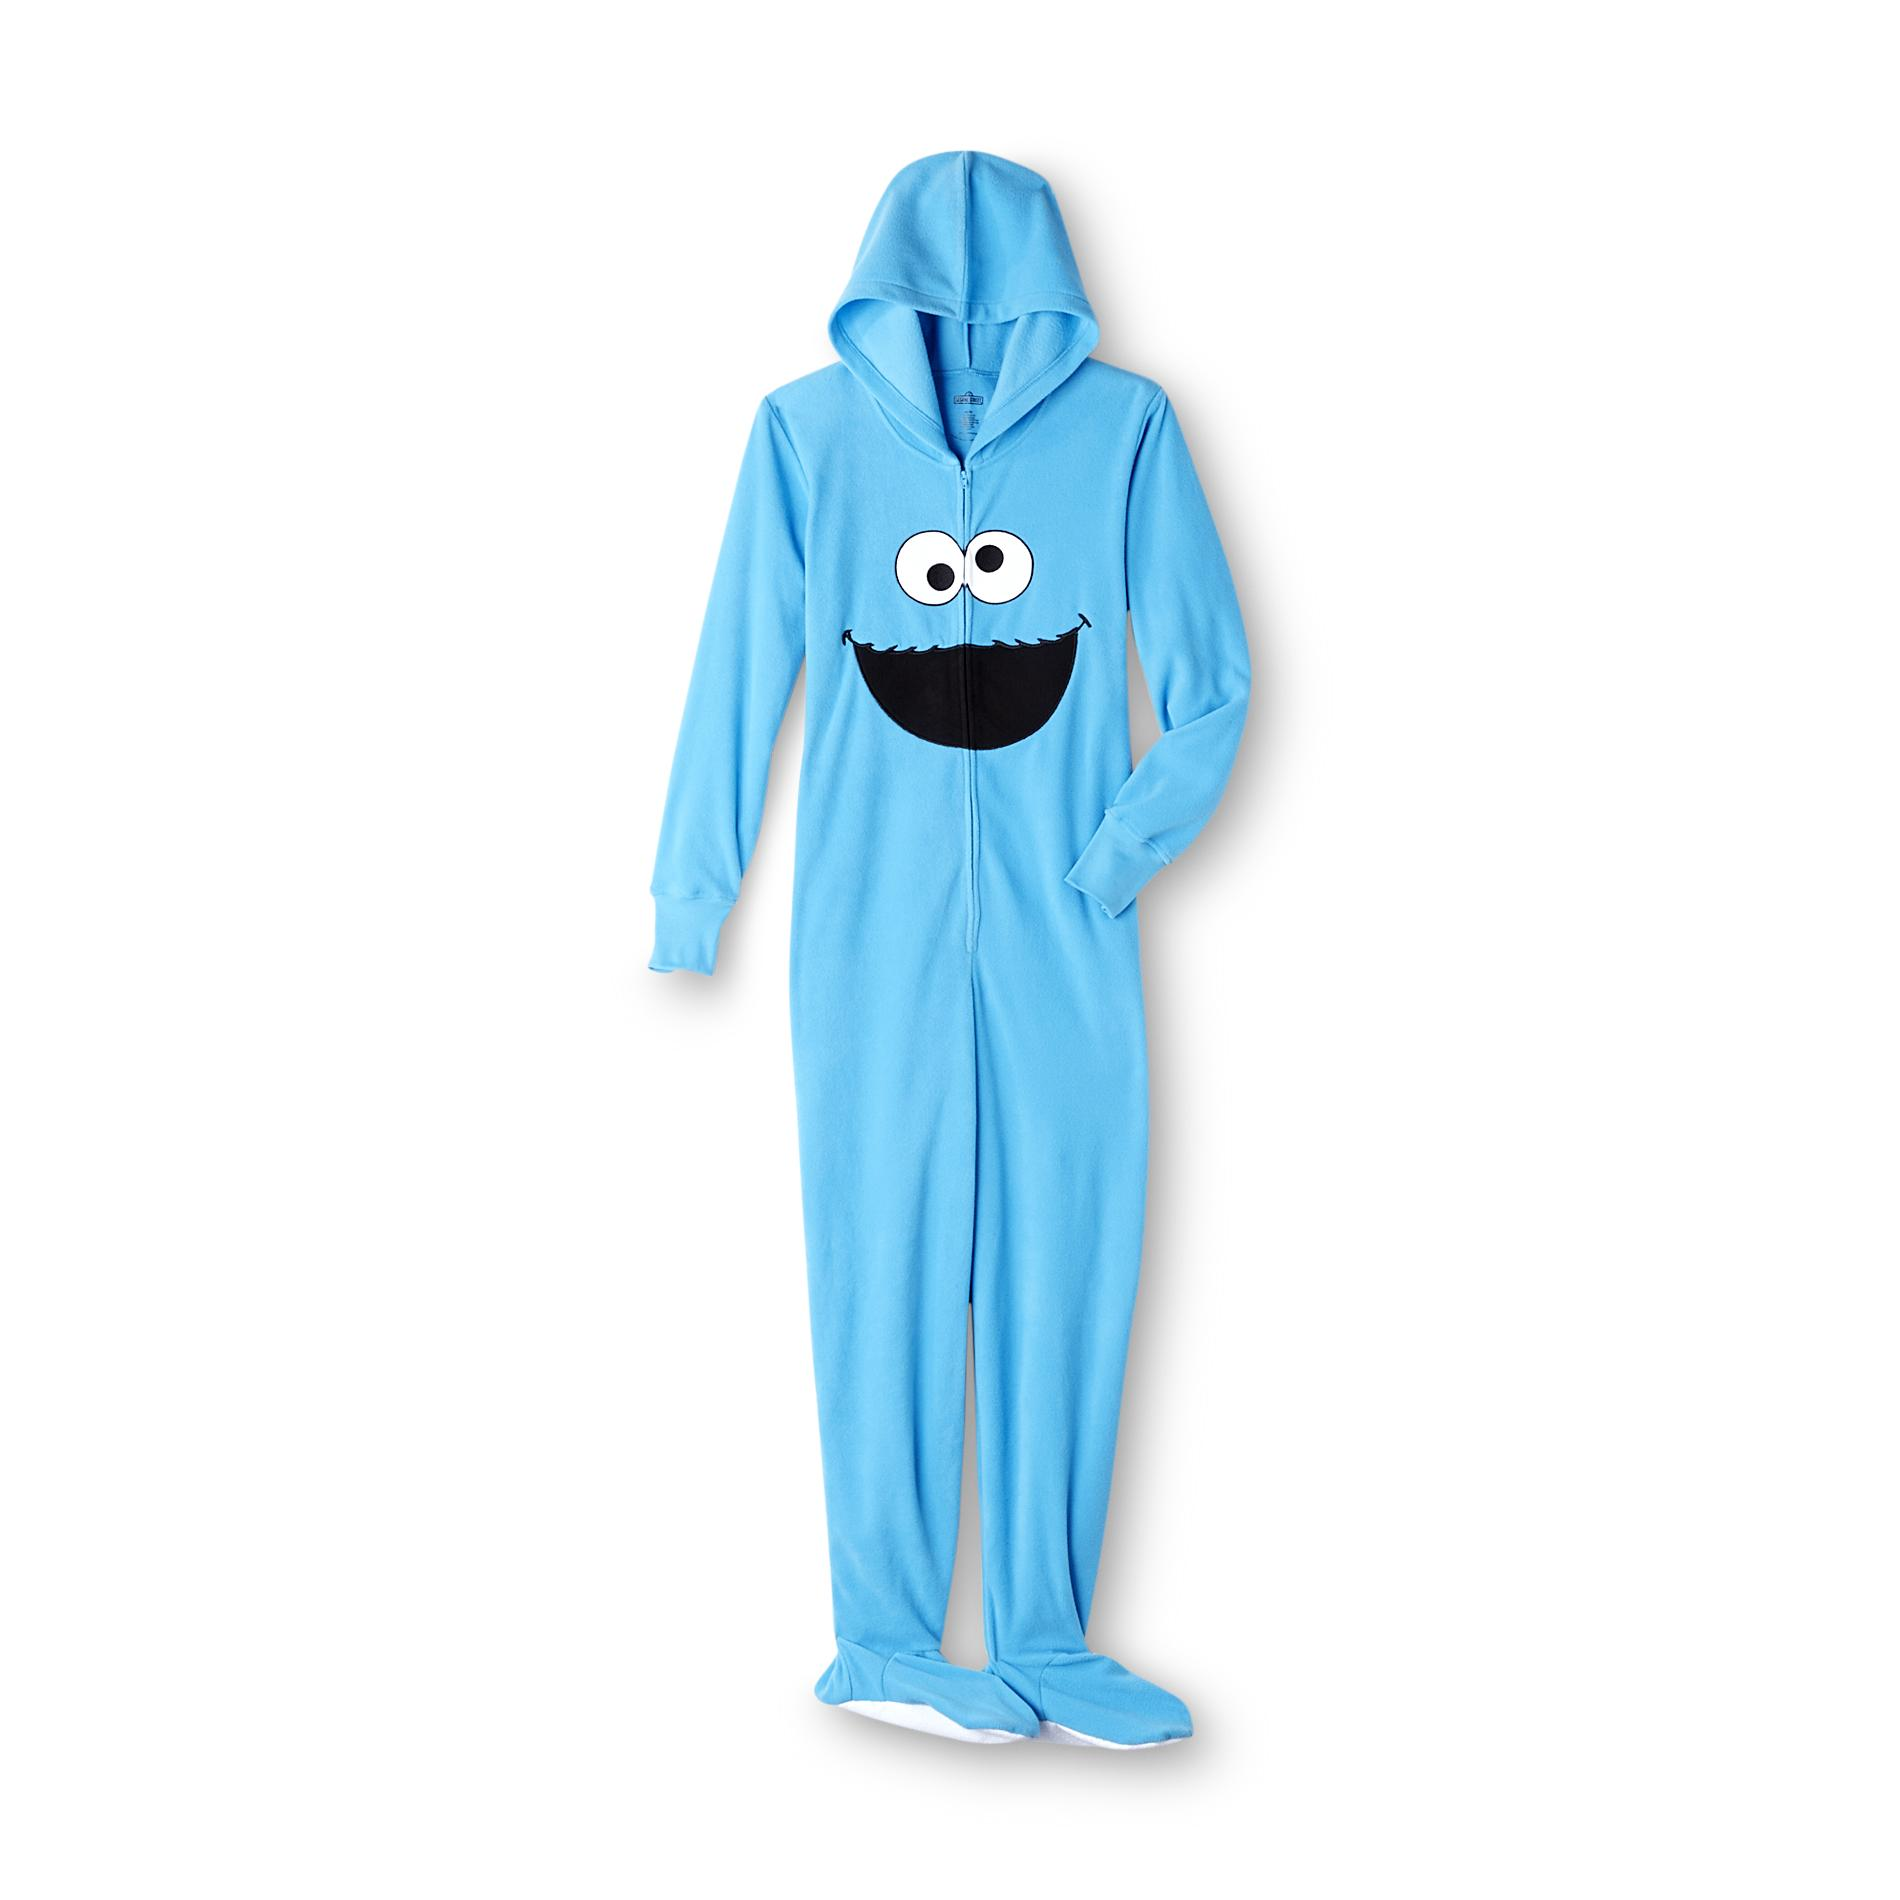 Sesame street onesies for adults uk, three guys one girl foursome